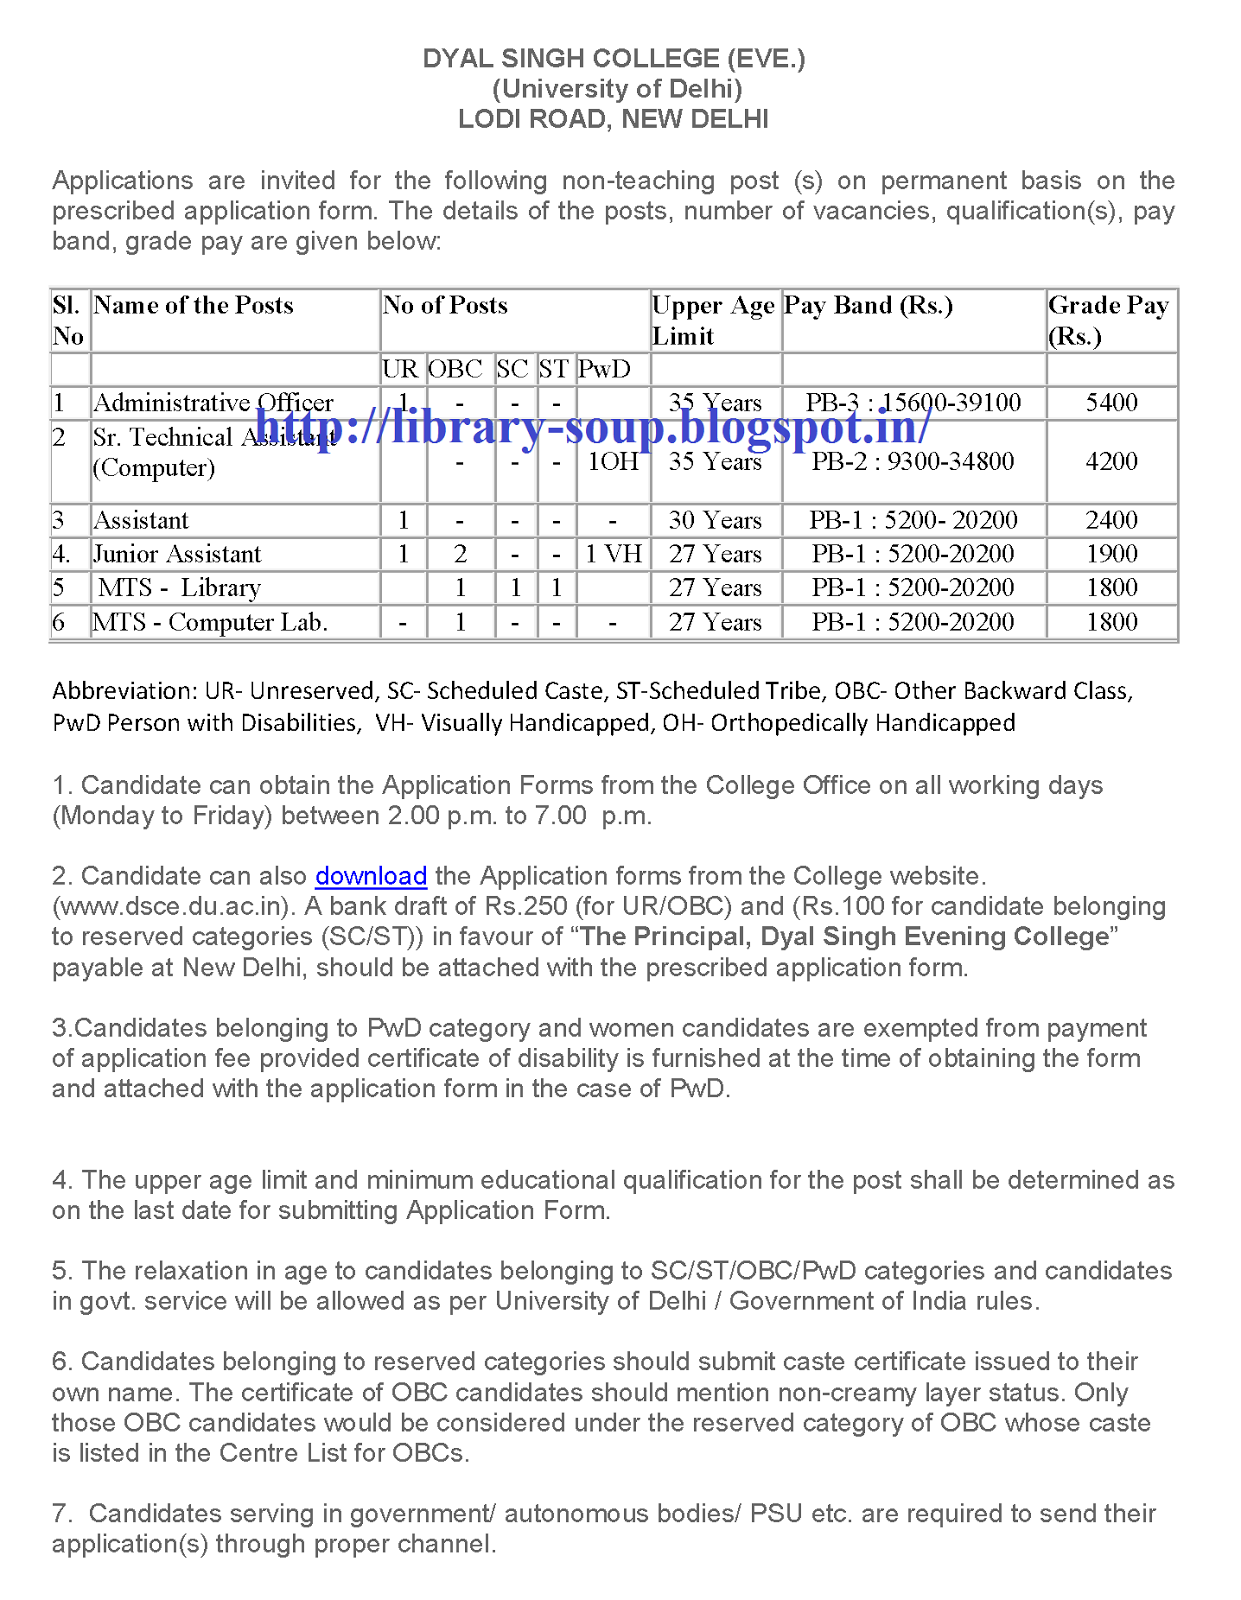 Liry Soup : MTS-Liry Vacancy in Dyal Singh College (Evening ... Application Form Du on application in spanish, application cartoon, application meaning in science, application trial, application to join motorcycle club, application approved, application insights, application for rental, application to be my boyfriend, application to join a club, application to rent california, application for employment, application template, application submitted, application service provider, application database diagram, application error, application for scholarship sample, application to date my son, application clip art,